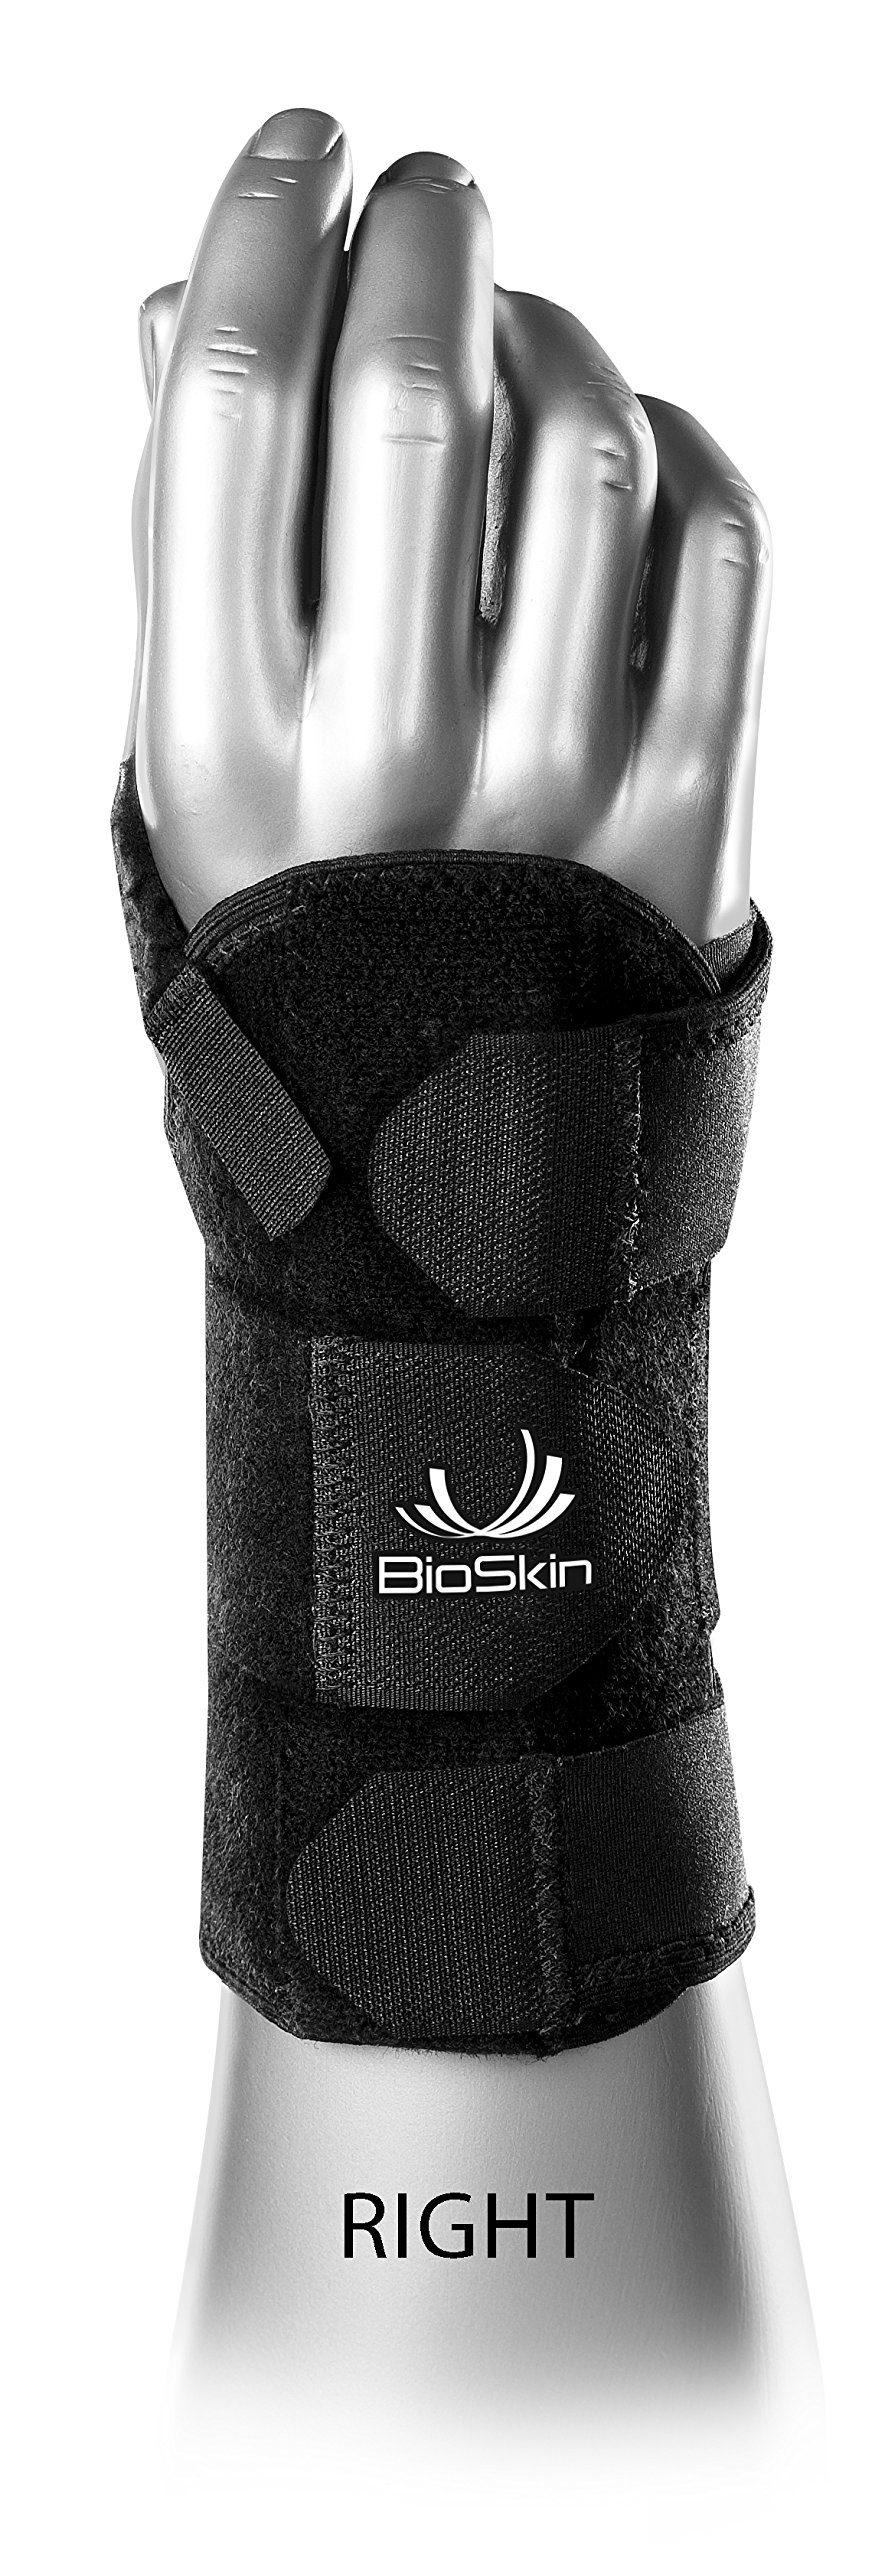 BioSkin DP2 Wrist Brace, Right, Medium/Large by BIOSKIN